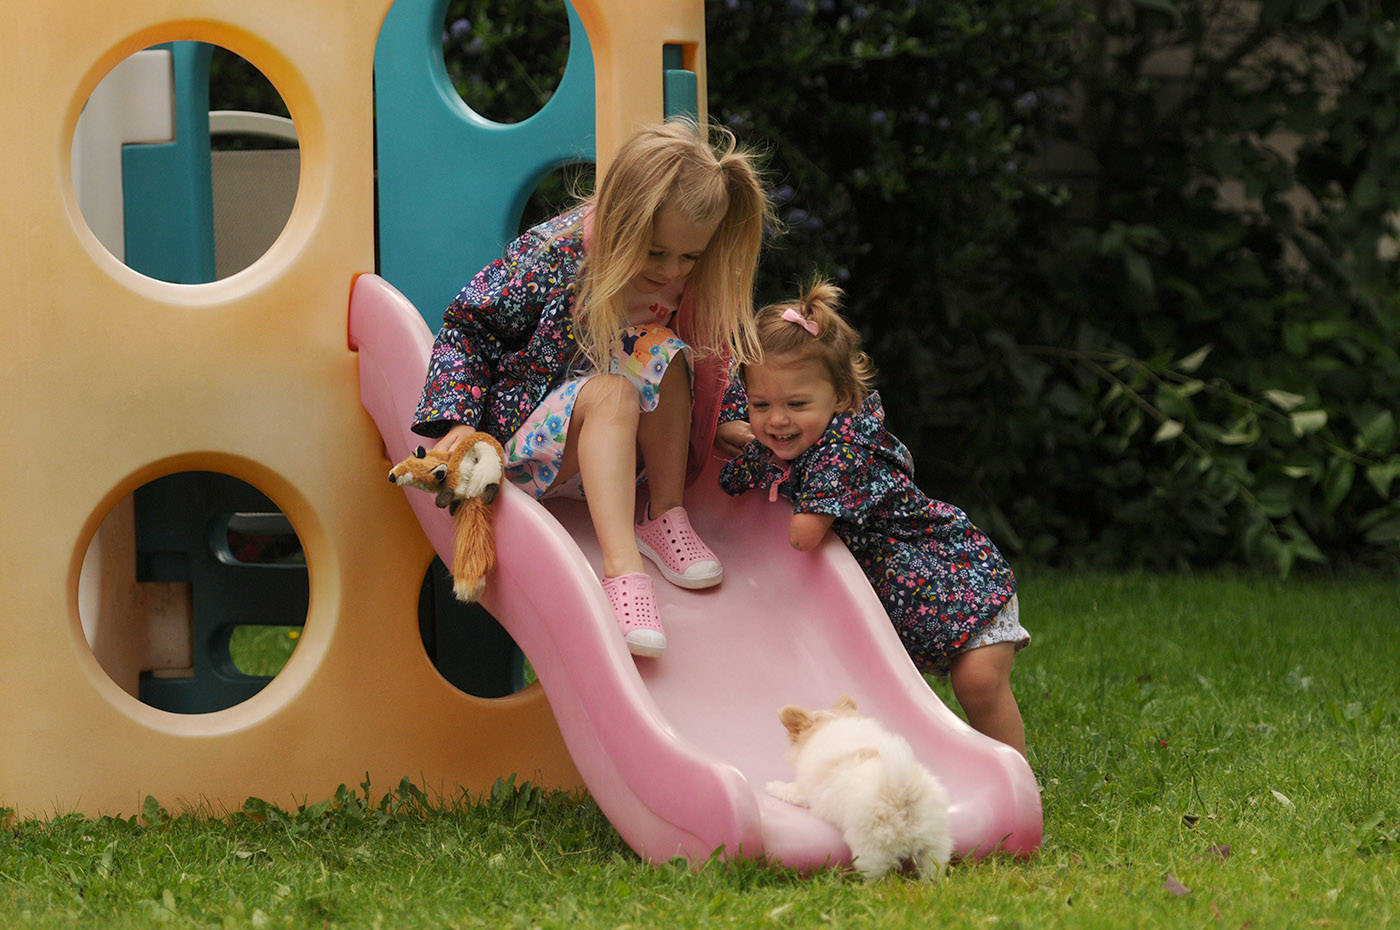 Two-year-old Ivy McLeod and five-year-old sister Elena play with Lucky the puppy outside their Chilliwack home on Thursday, June 10, 2021. (Jenna Hauck/ Chilliwack Progress)